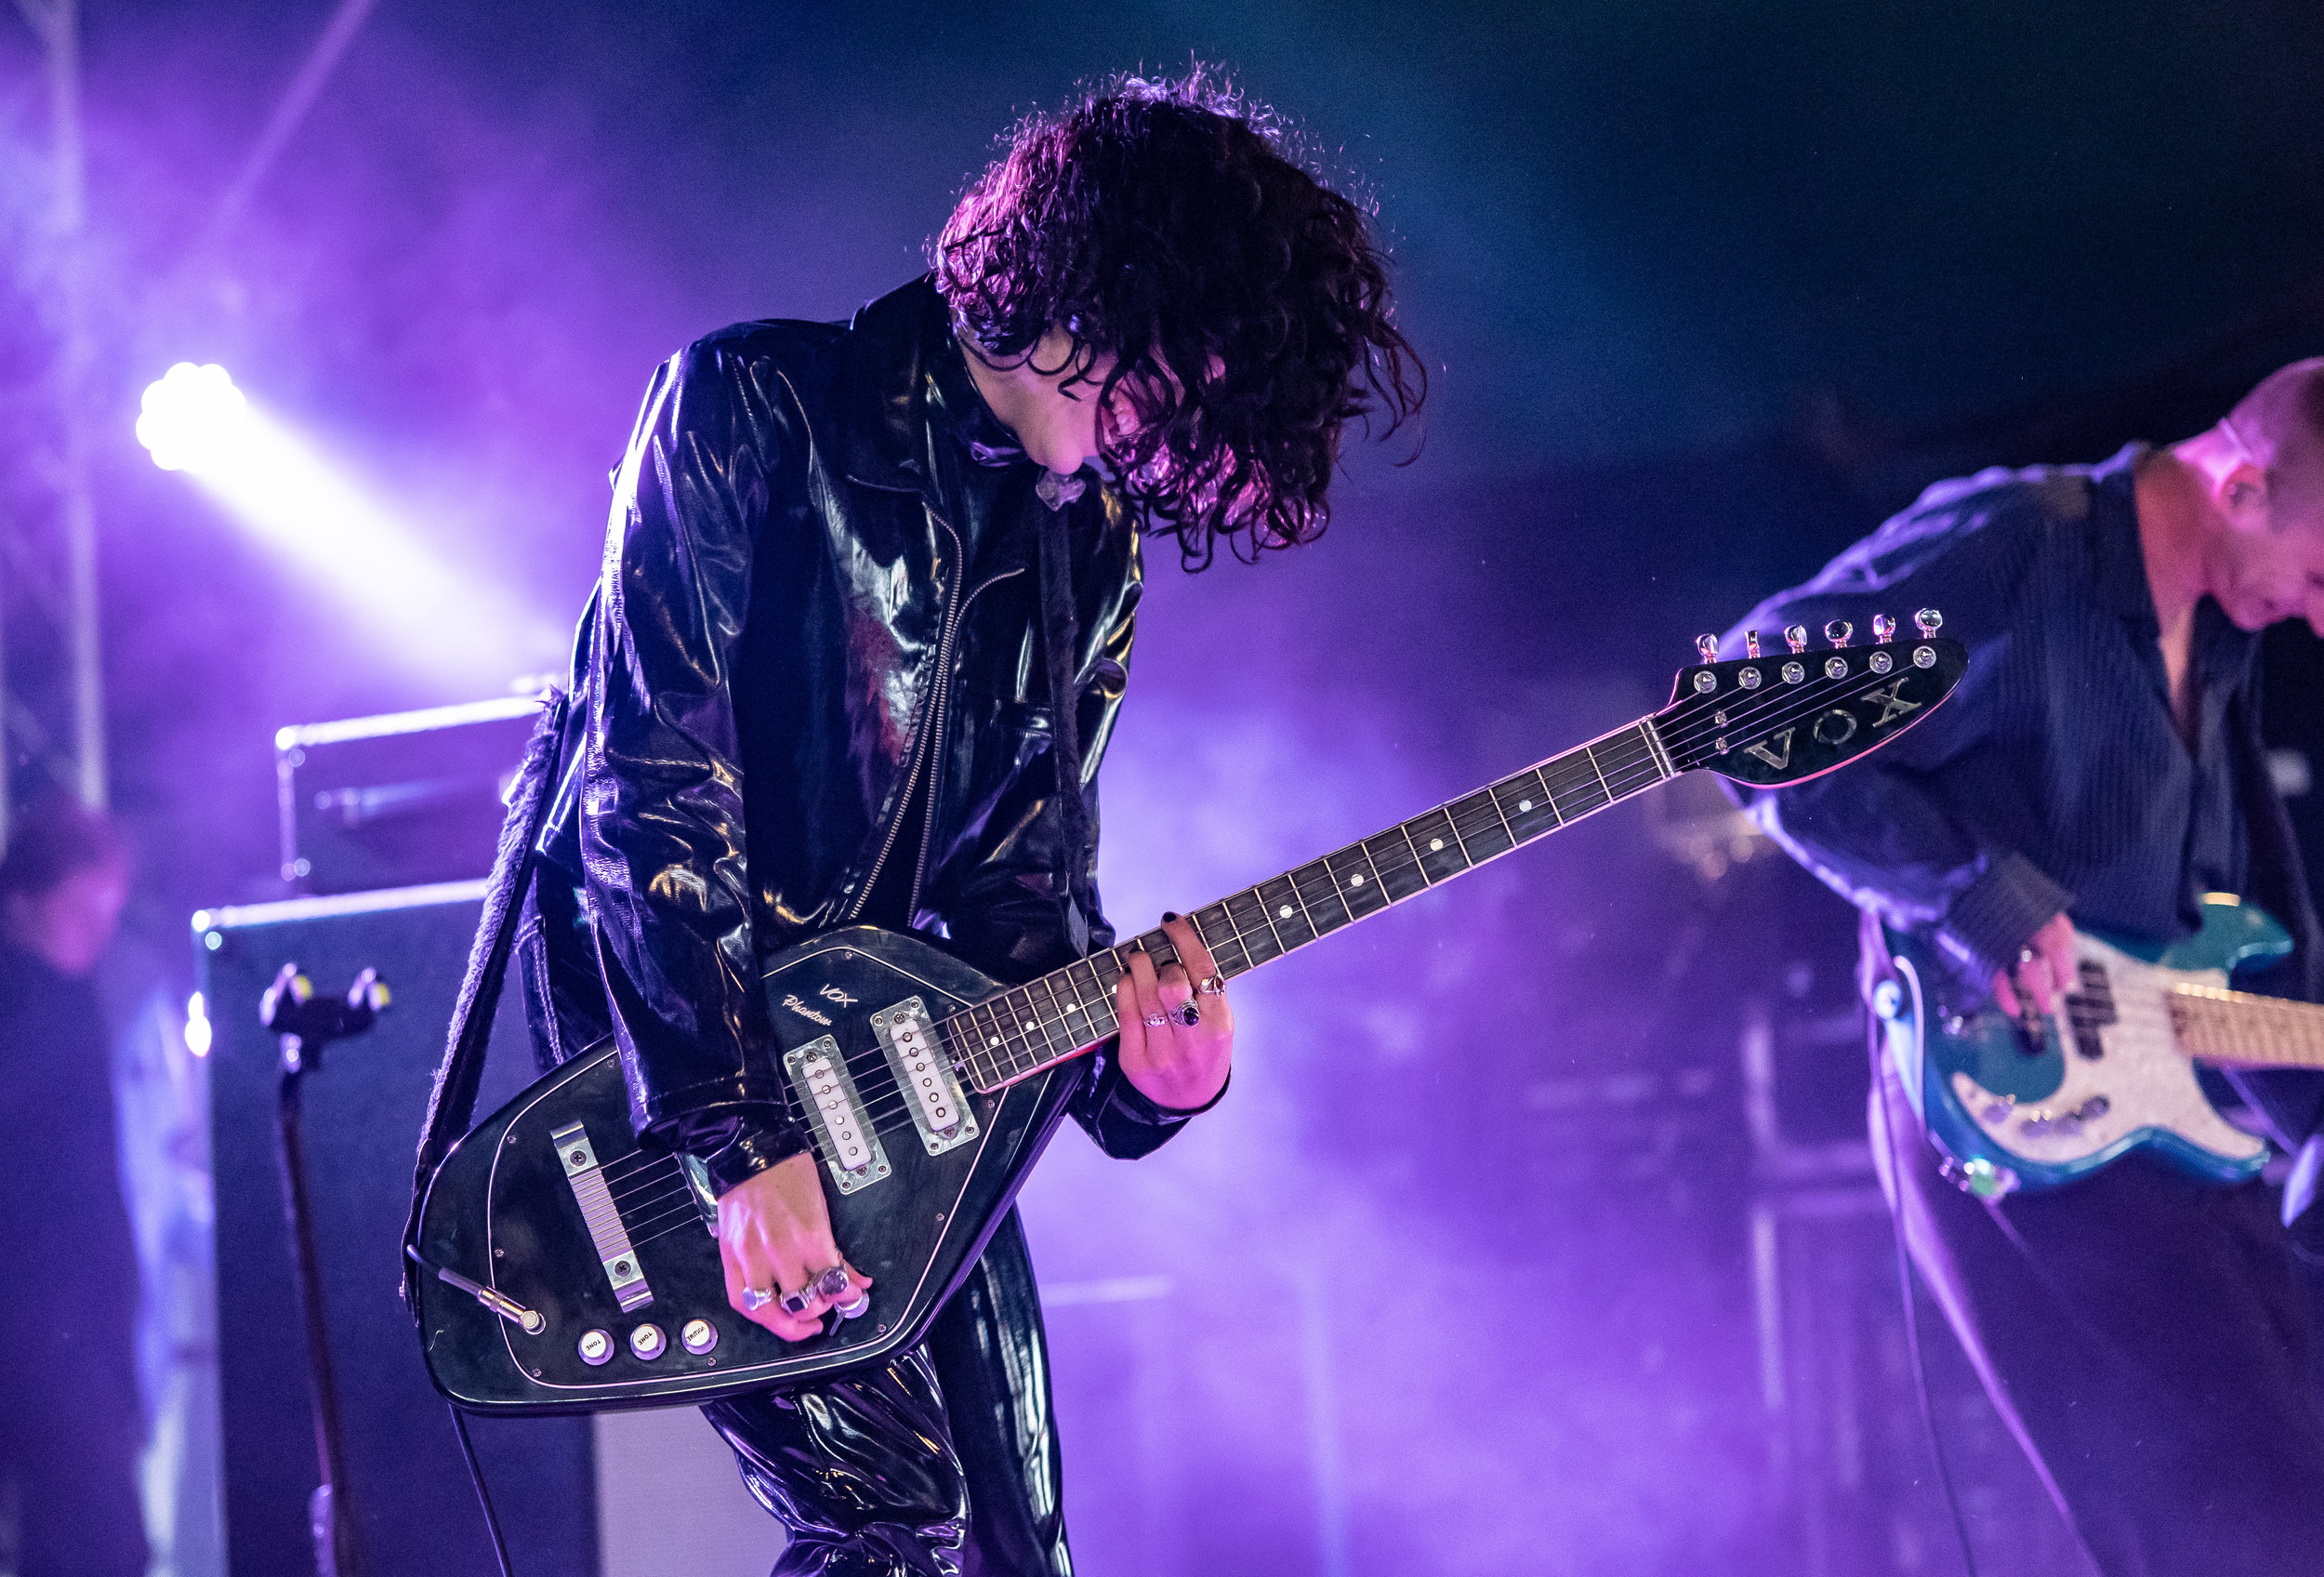 PALE WAVES PERFORMING A EXCITING SET OVER ON THE FESTIVAL REPUBLIC STAGE AT LEEDS FESTIVAL 2018 - 26.08.2018  PICTURE BY: CALUM BUCHAN PHOTOGRAPHY